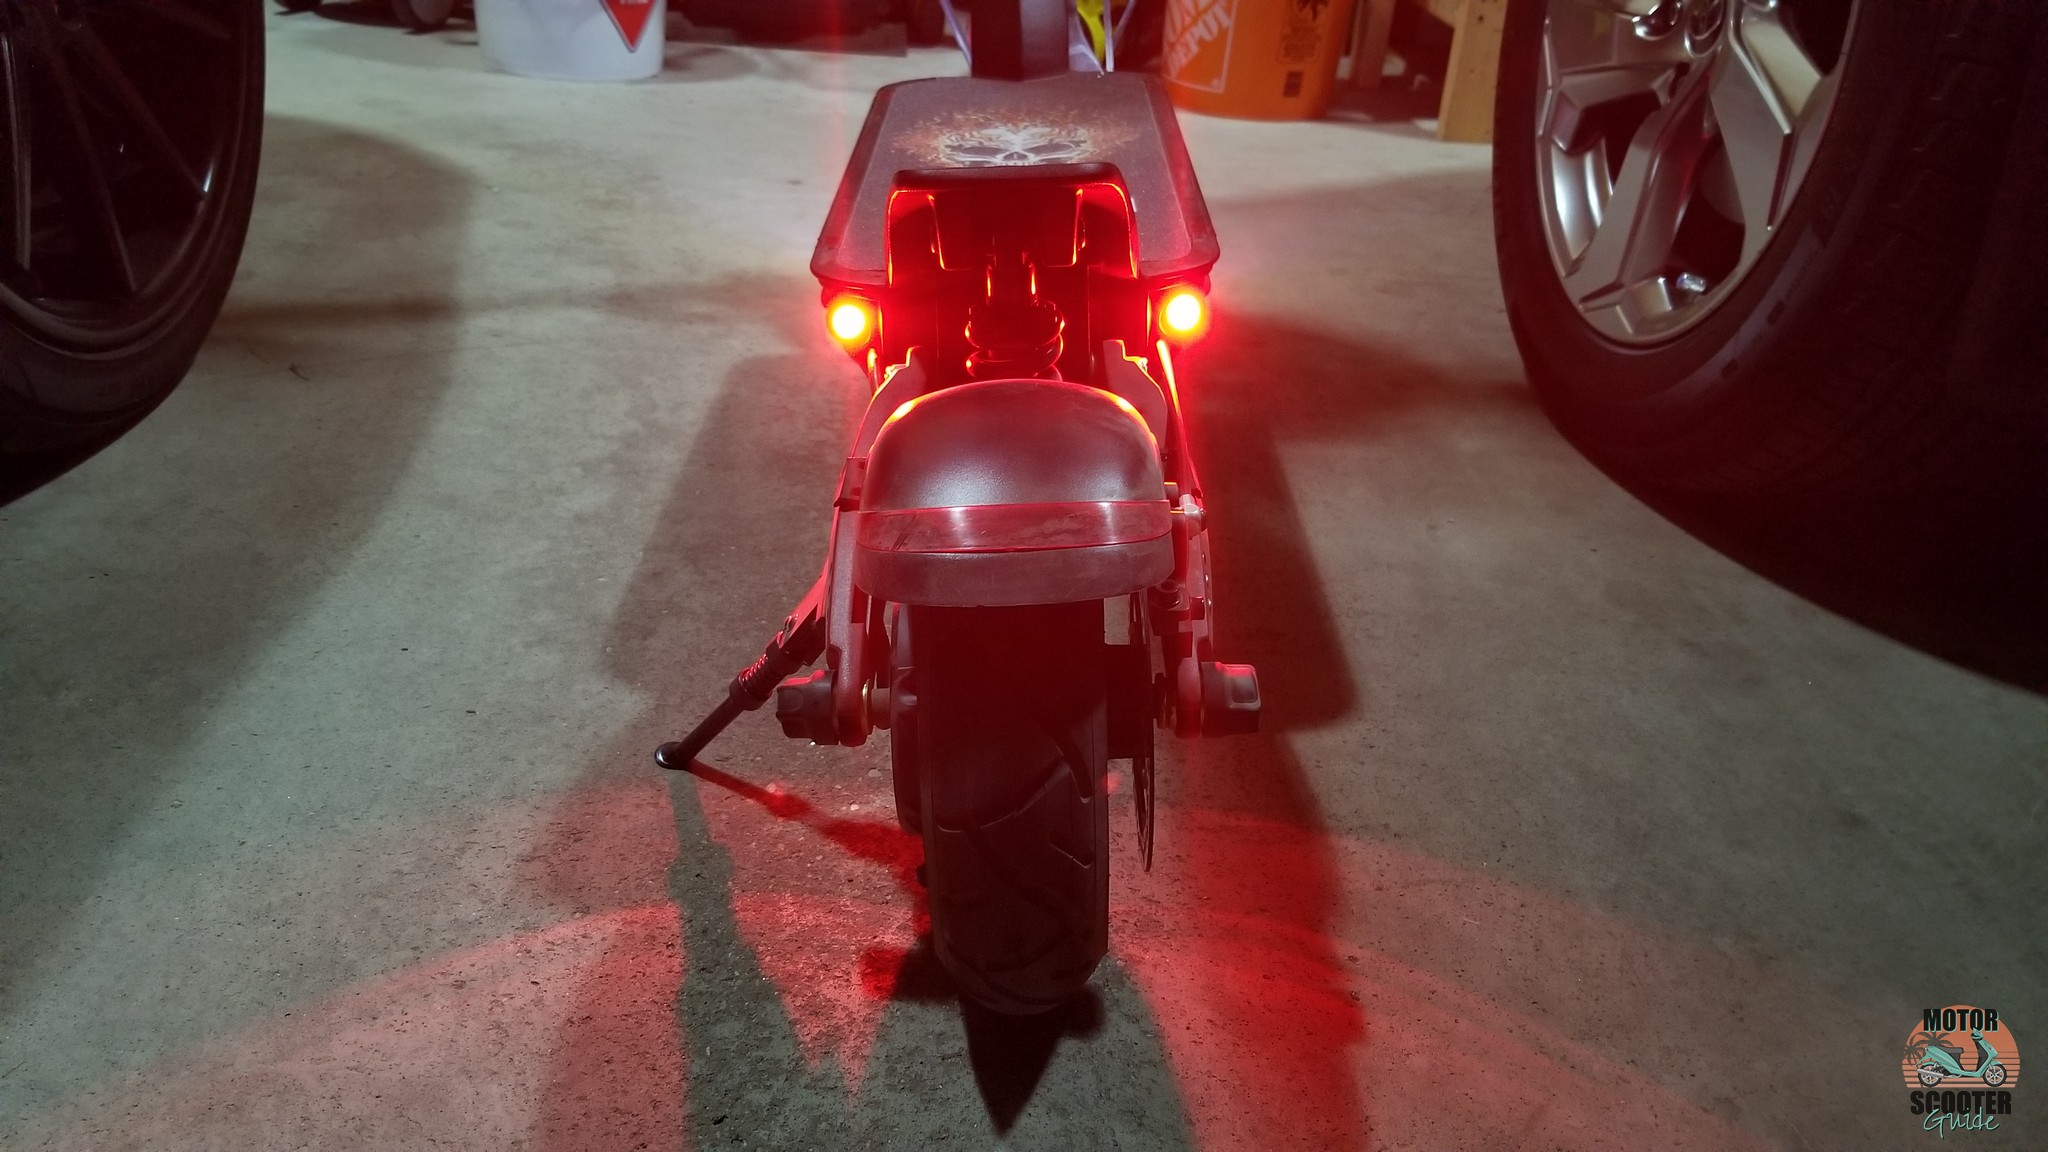 Rear red LED taillights on Varla scooter